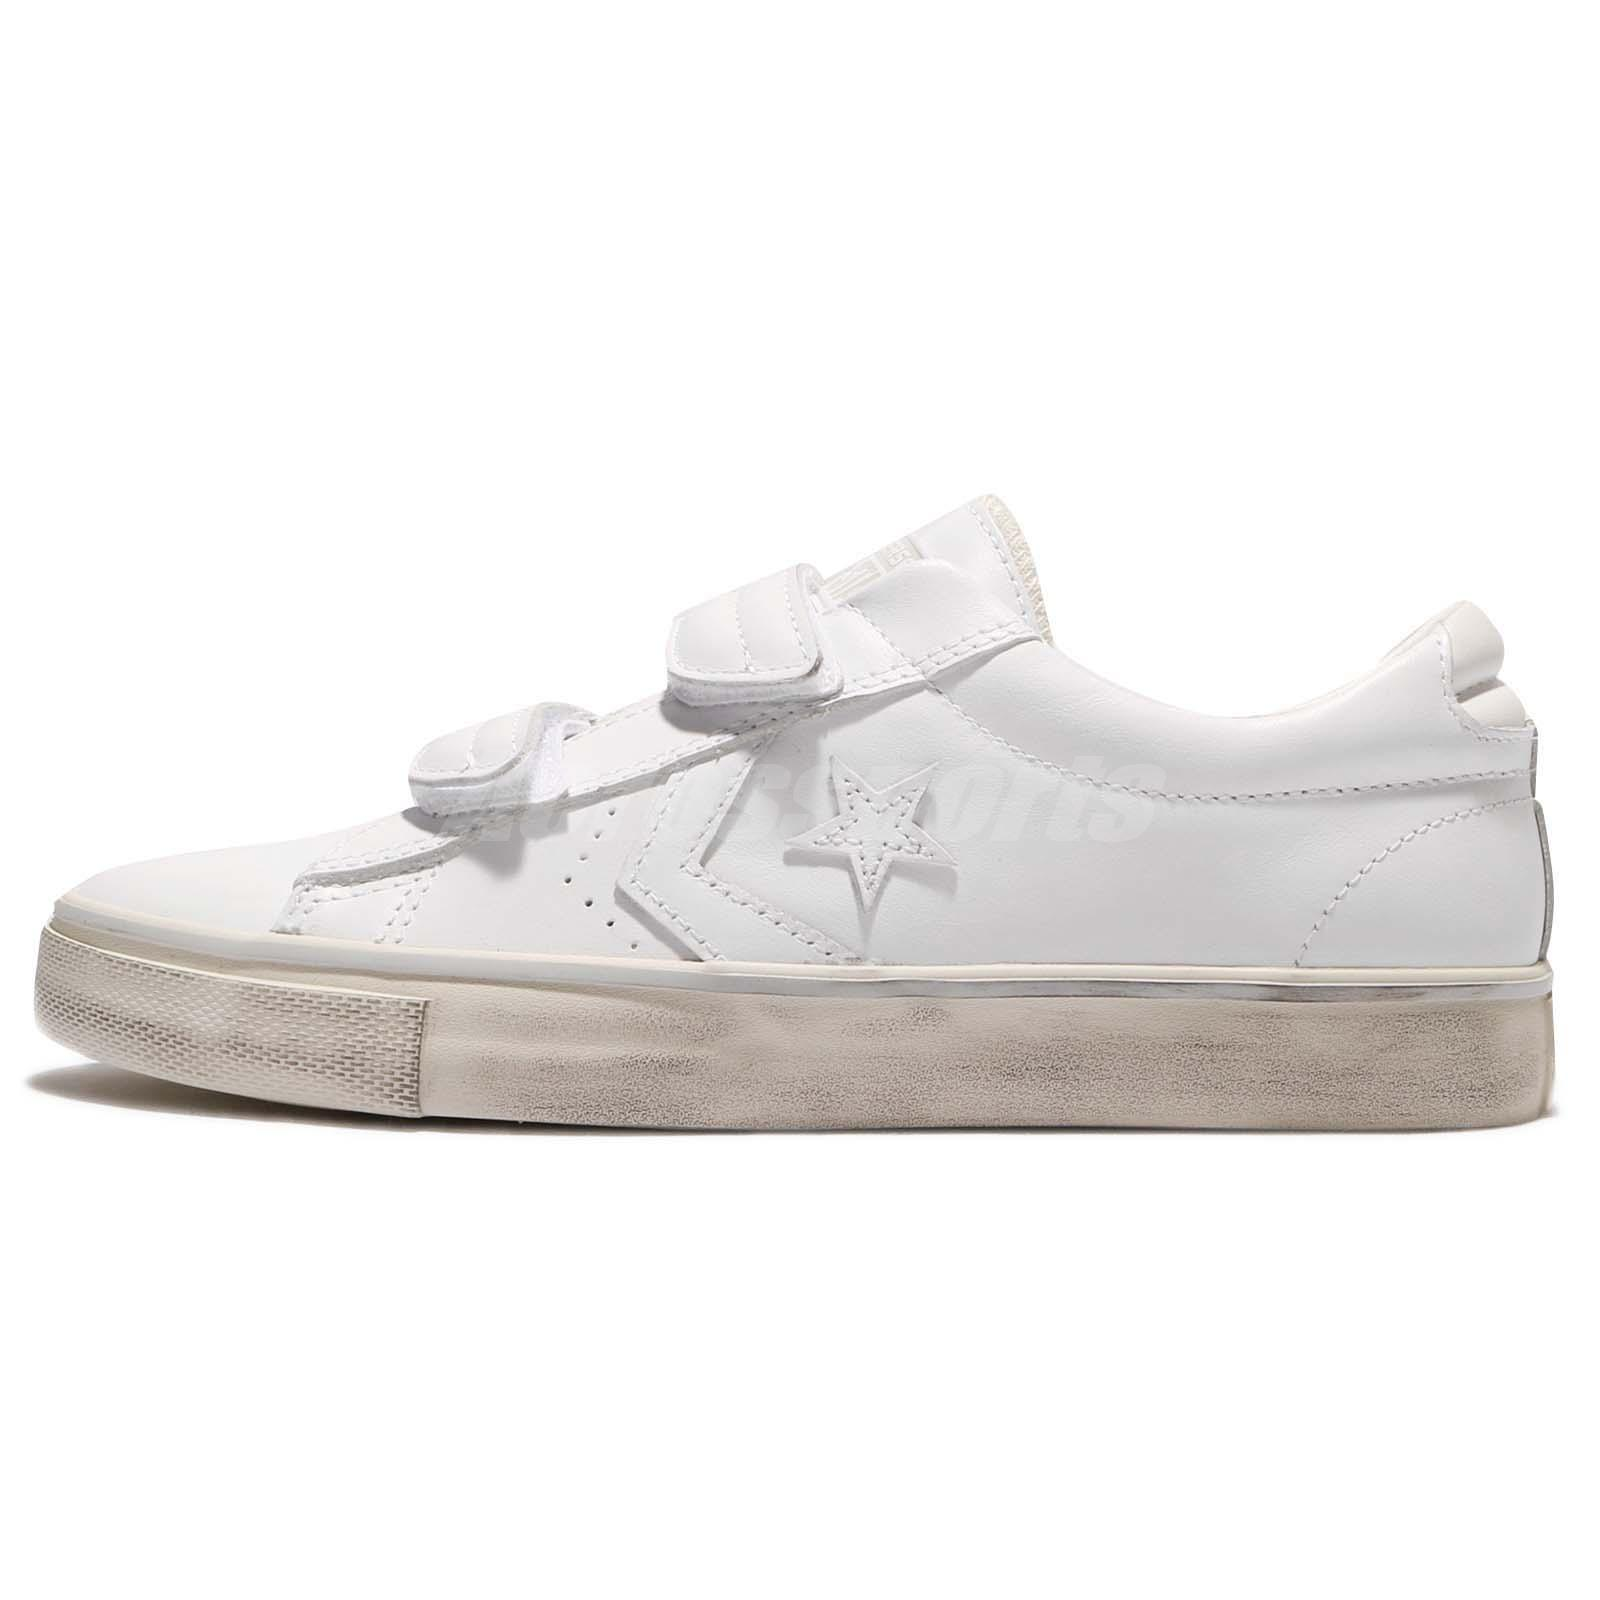 converse pro leather strap ox